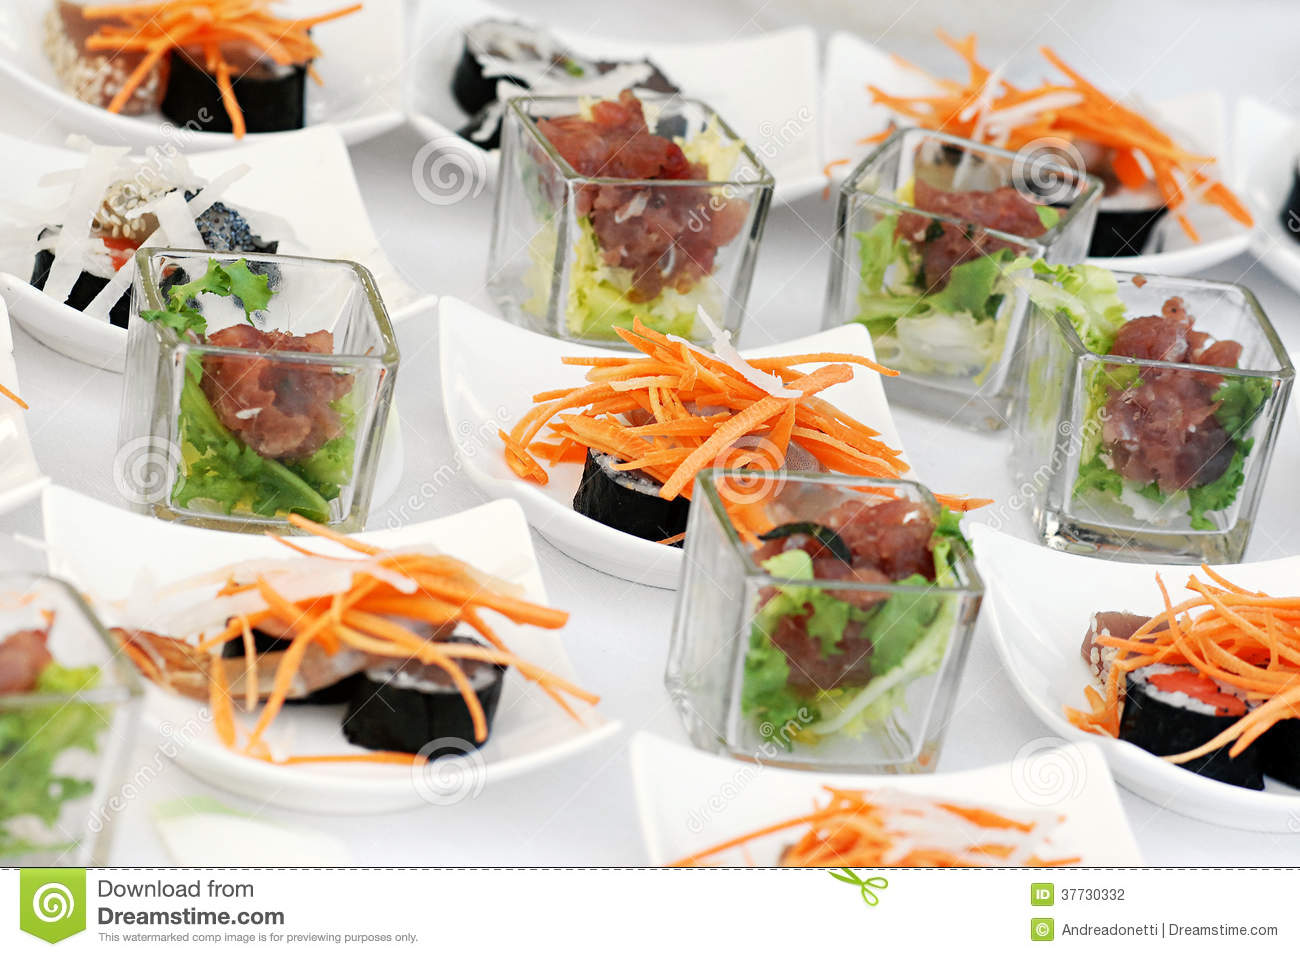 Sushi Appetizers On A Buffet Table Stock Photography  : sushi appetizers buffet table 37730332 from www.dreamstime.com size 1300 x 957 jpeg 159kB